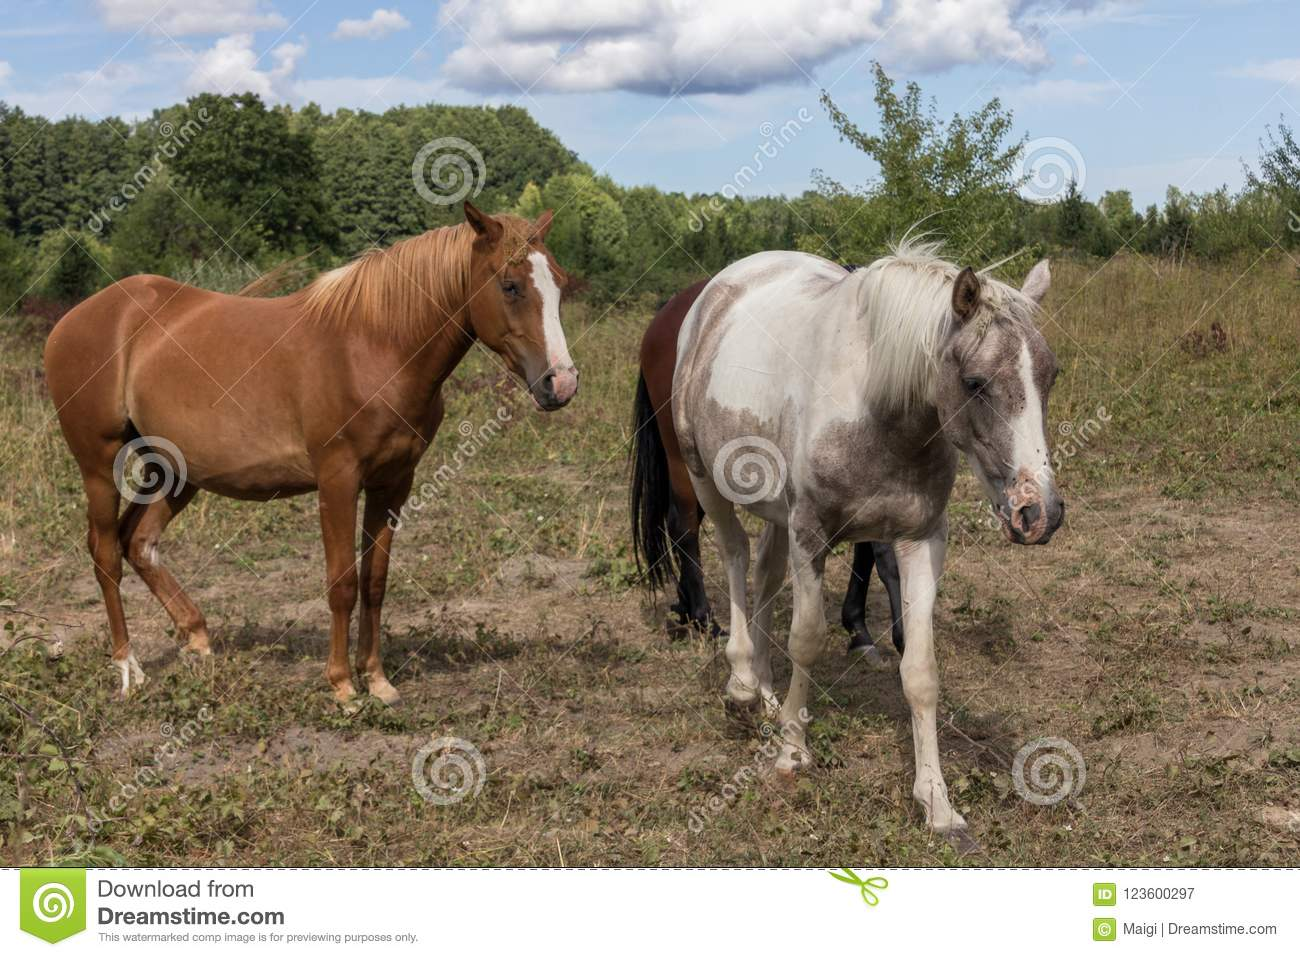 Download Horses on the pasture land stock image. Image of farming - 123600297